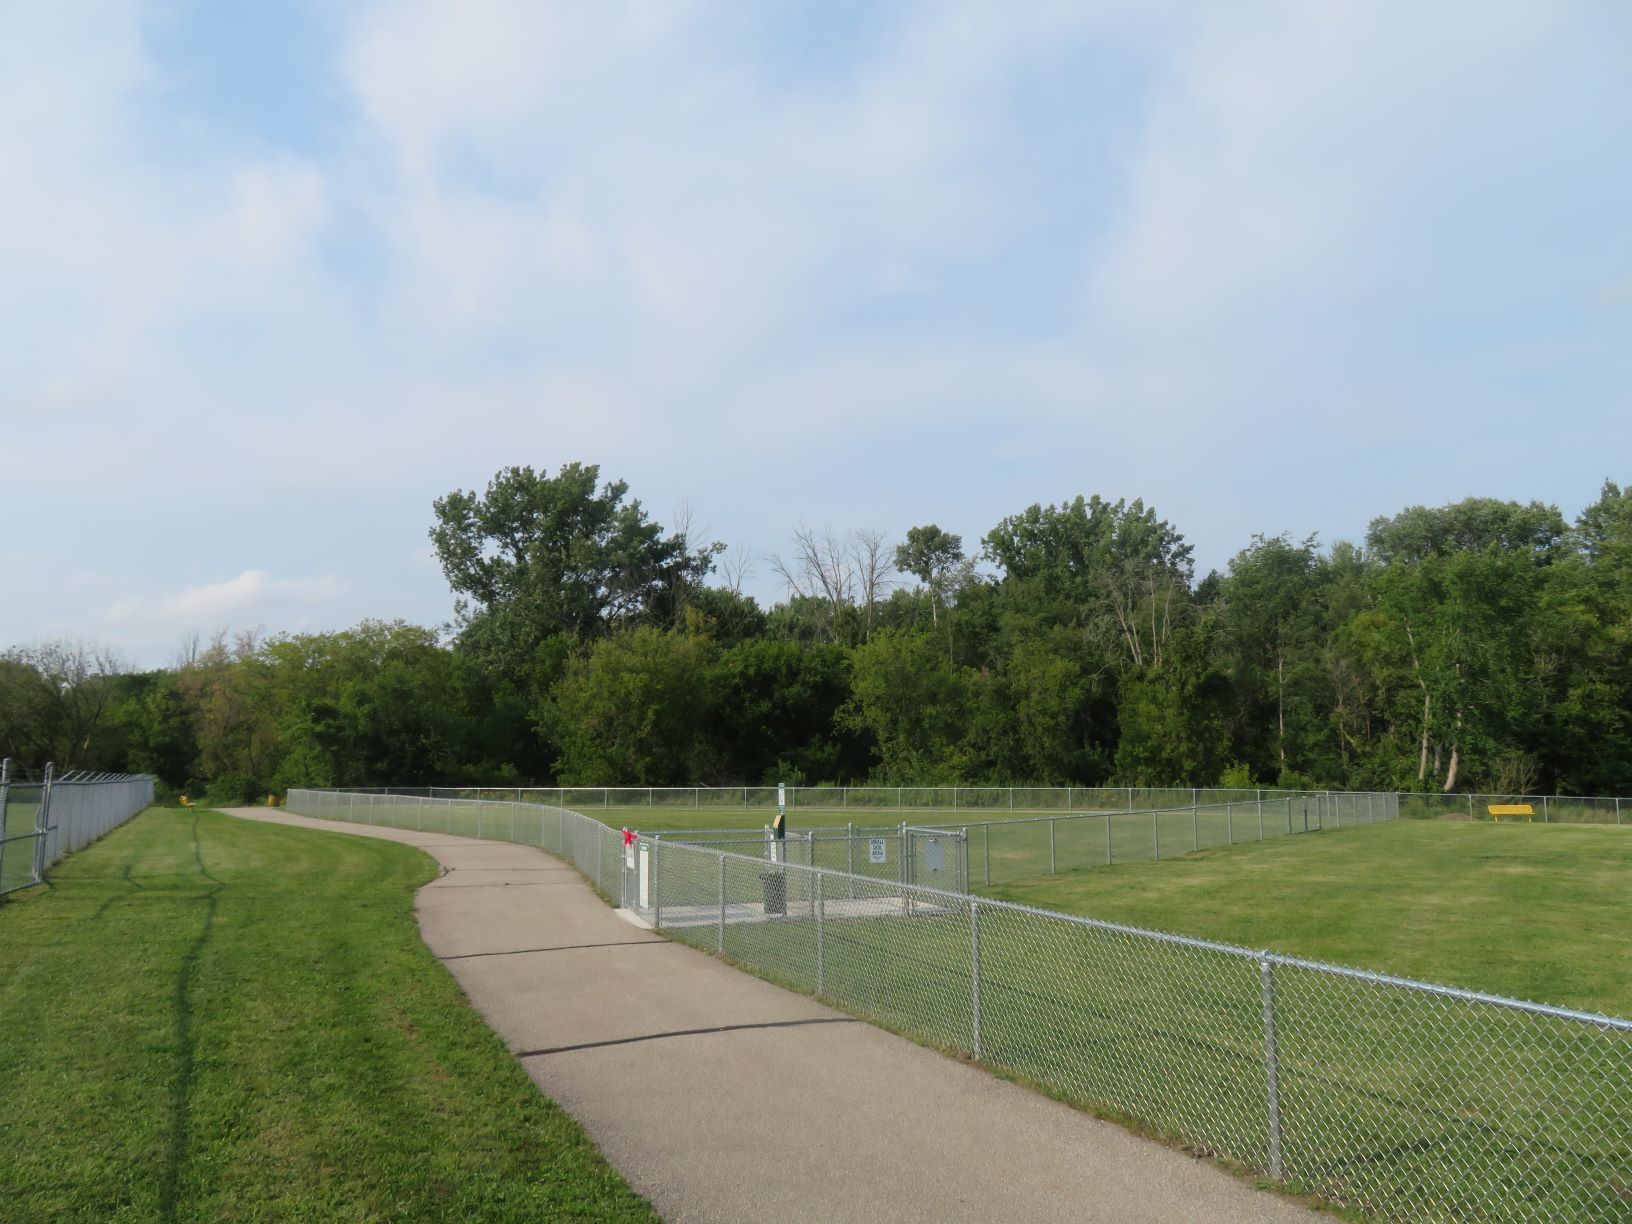 PinconningDogPark OpeningDay August2020 parkview